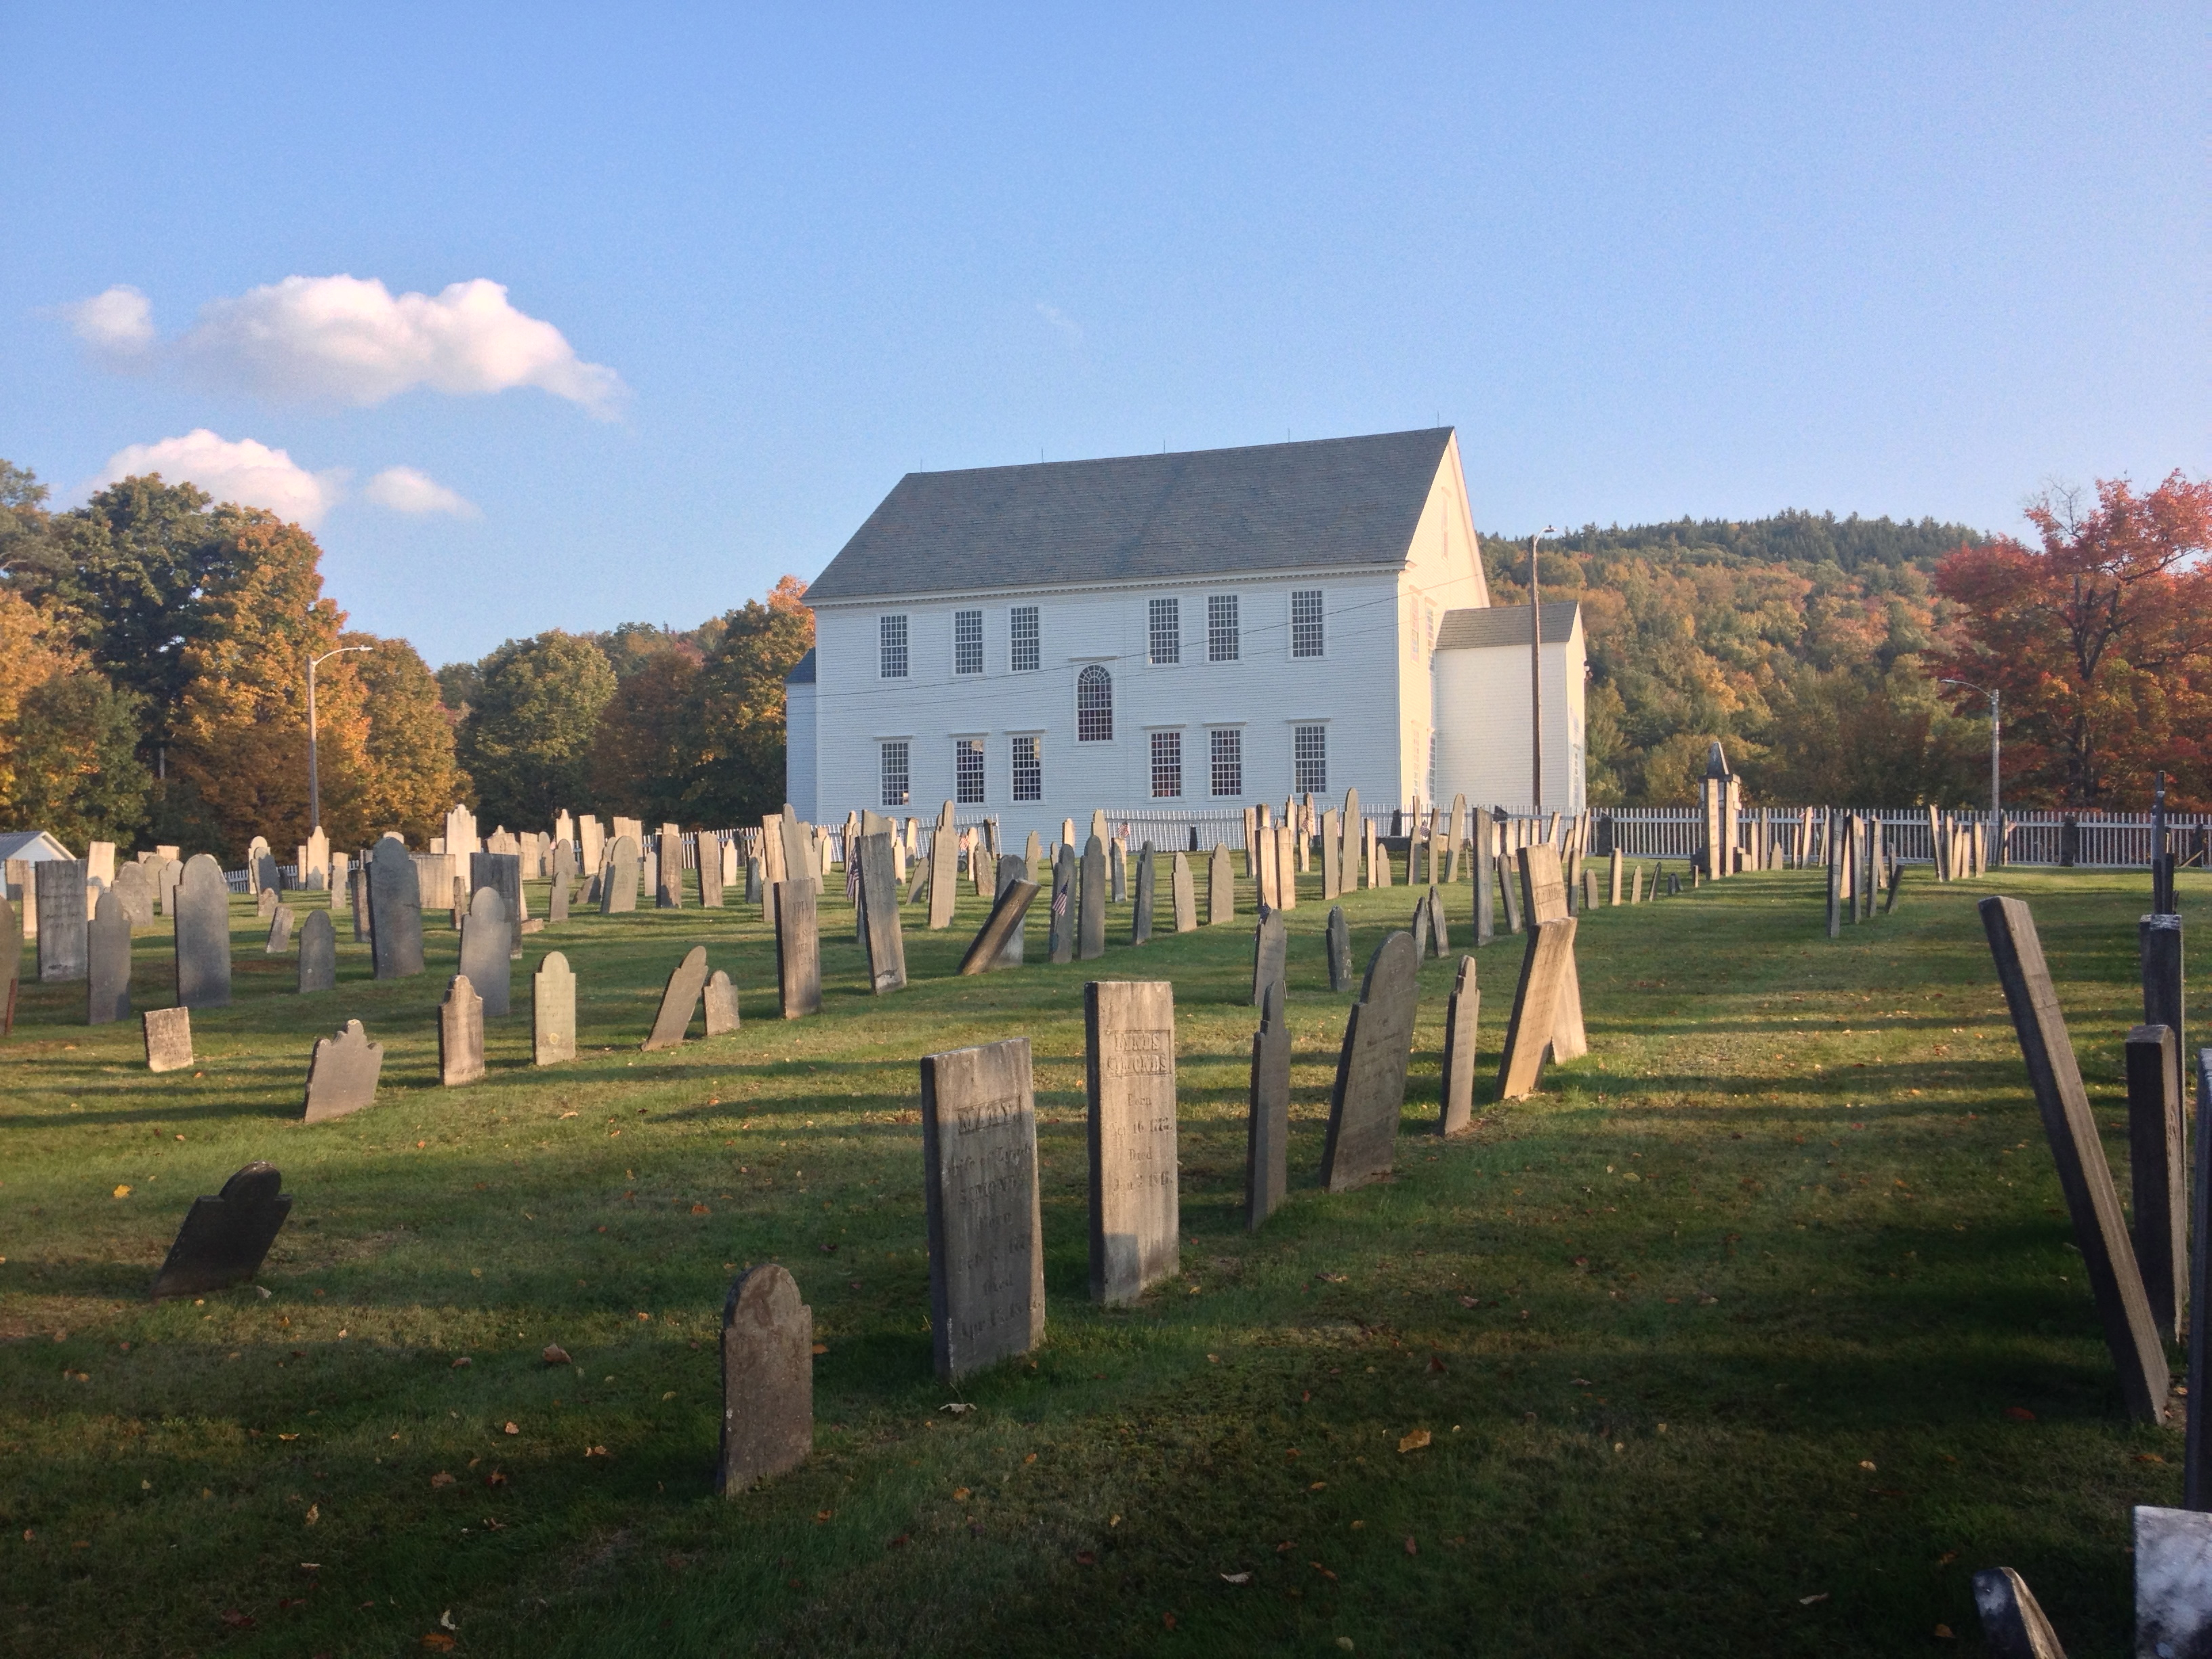 The Rockingham Meeting House with its cemetery in the foreground.